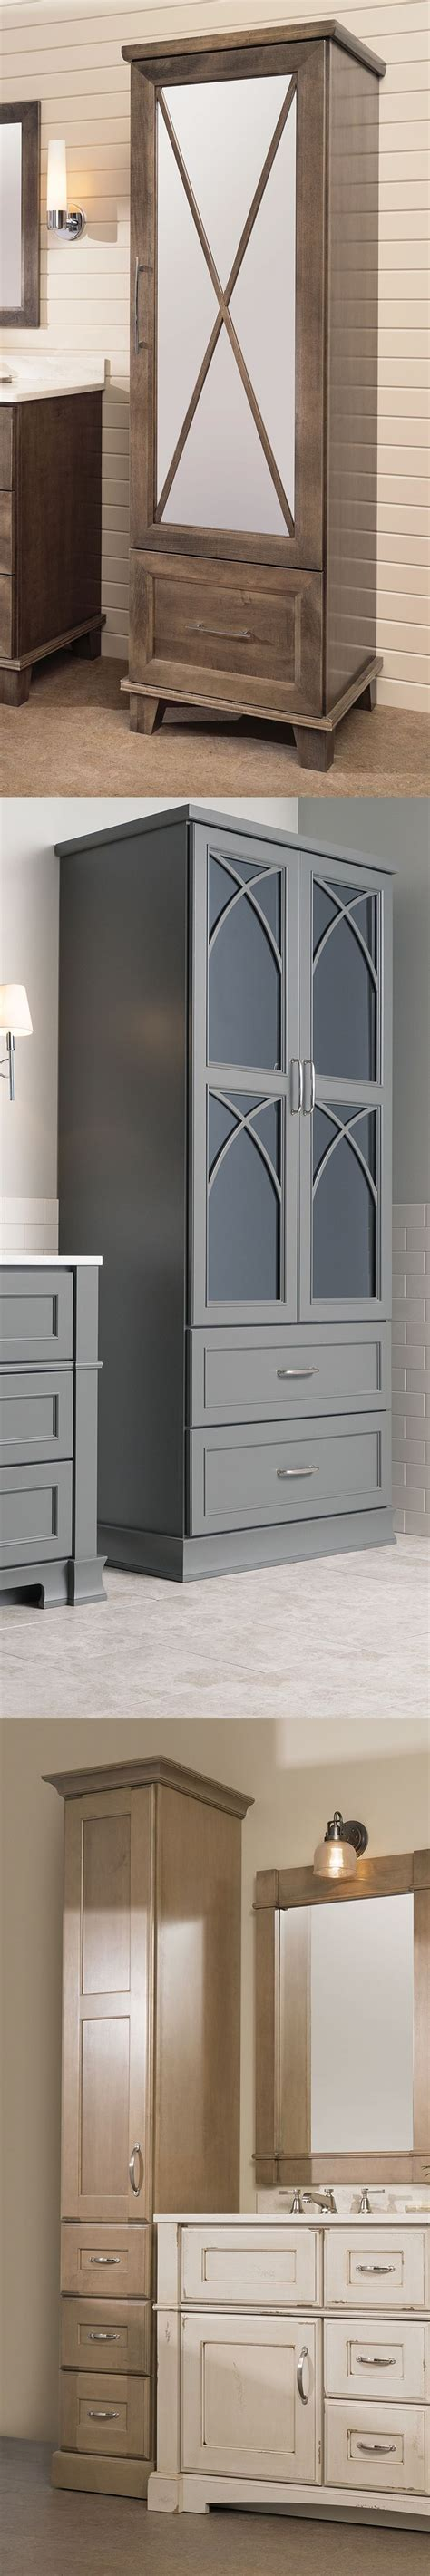 bathroom linen cabinet ideas awesome bathroom furniture ideas bathroom ideas designs